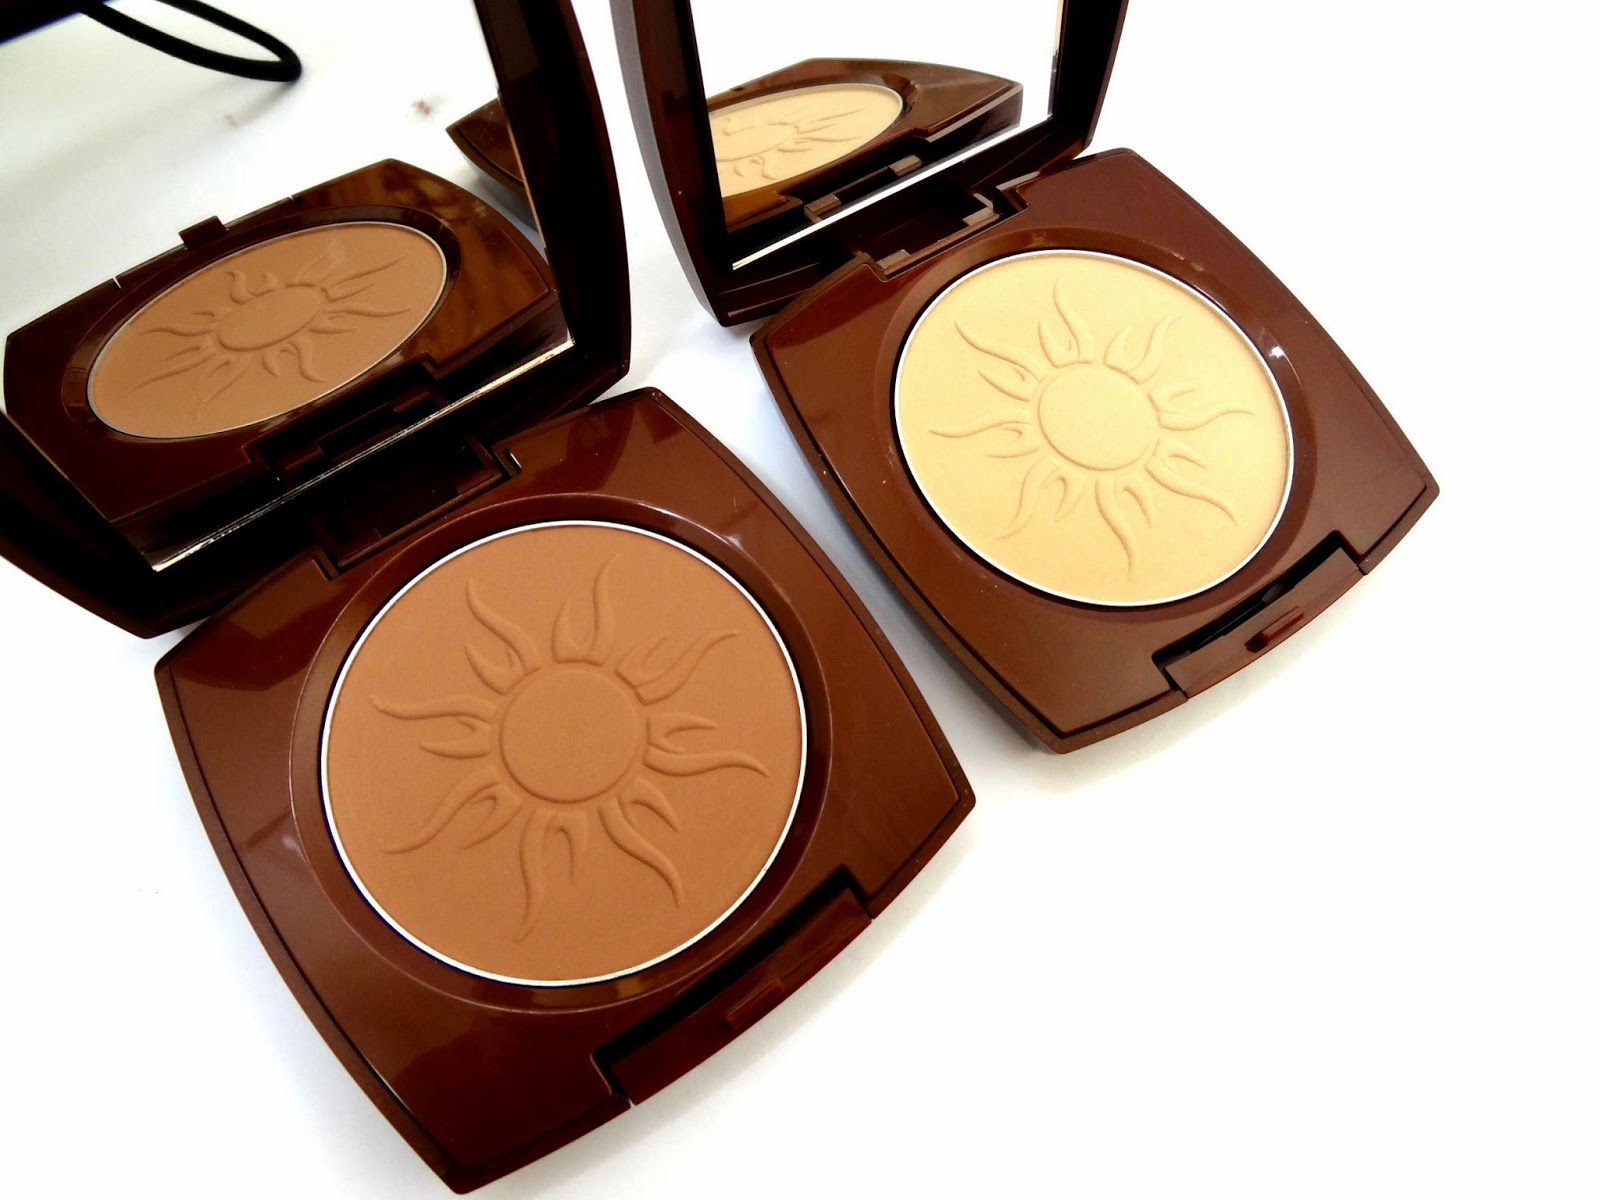 Avon Glow Sunkissed and LIght Bronze Powder